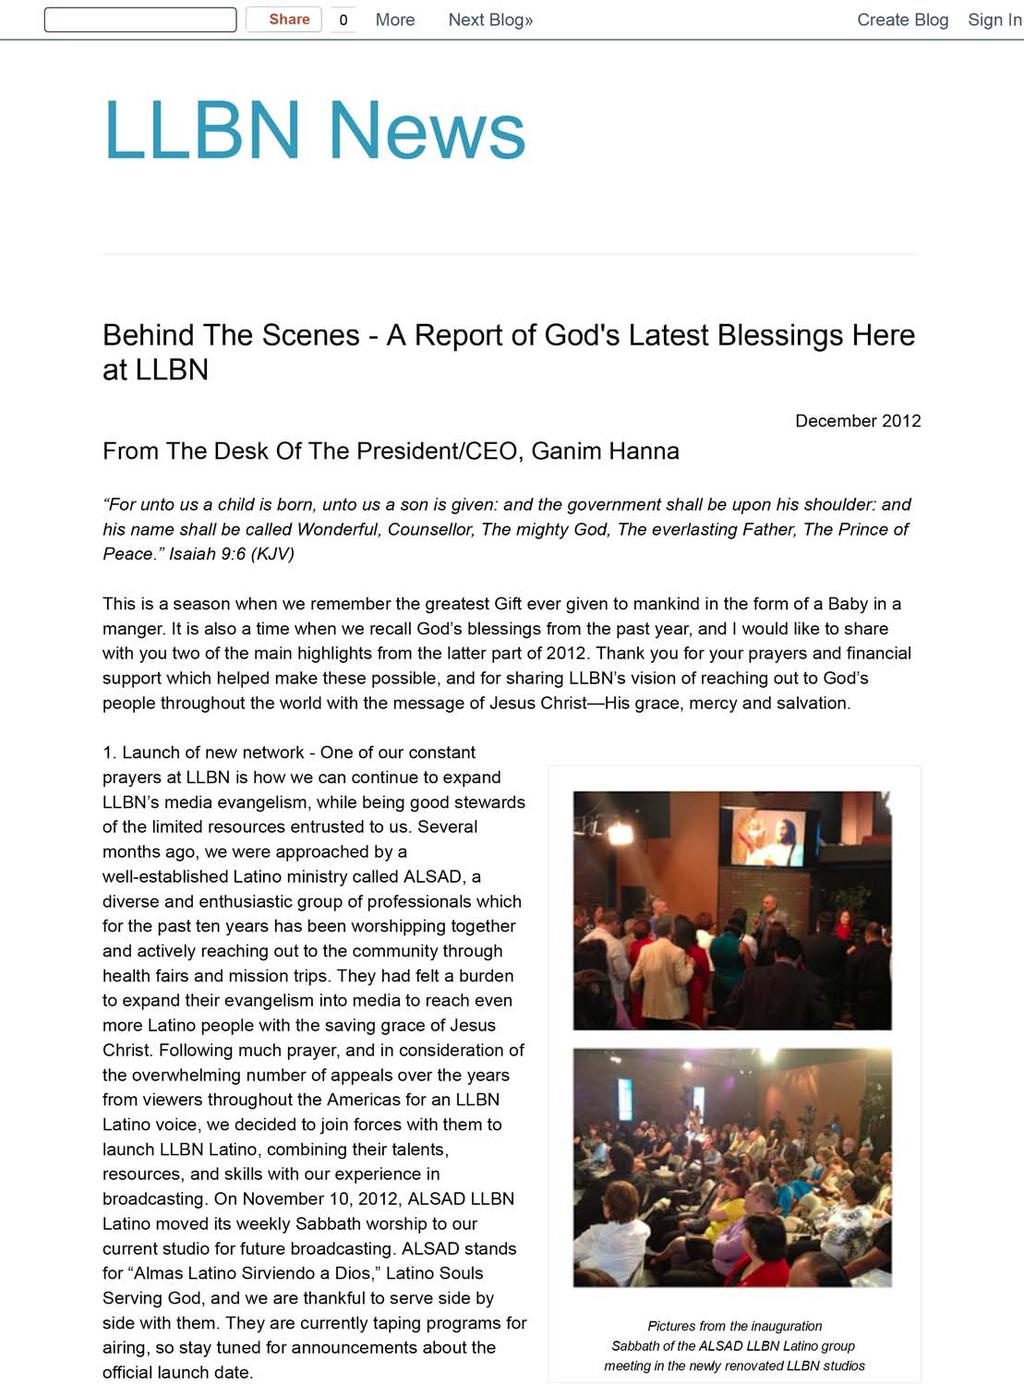 LLBN News: Behind The Scenes - A Report of God's Latest Blessings H.